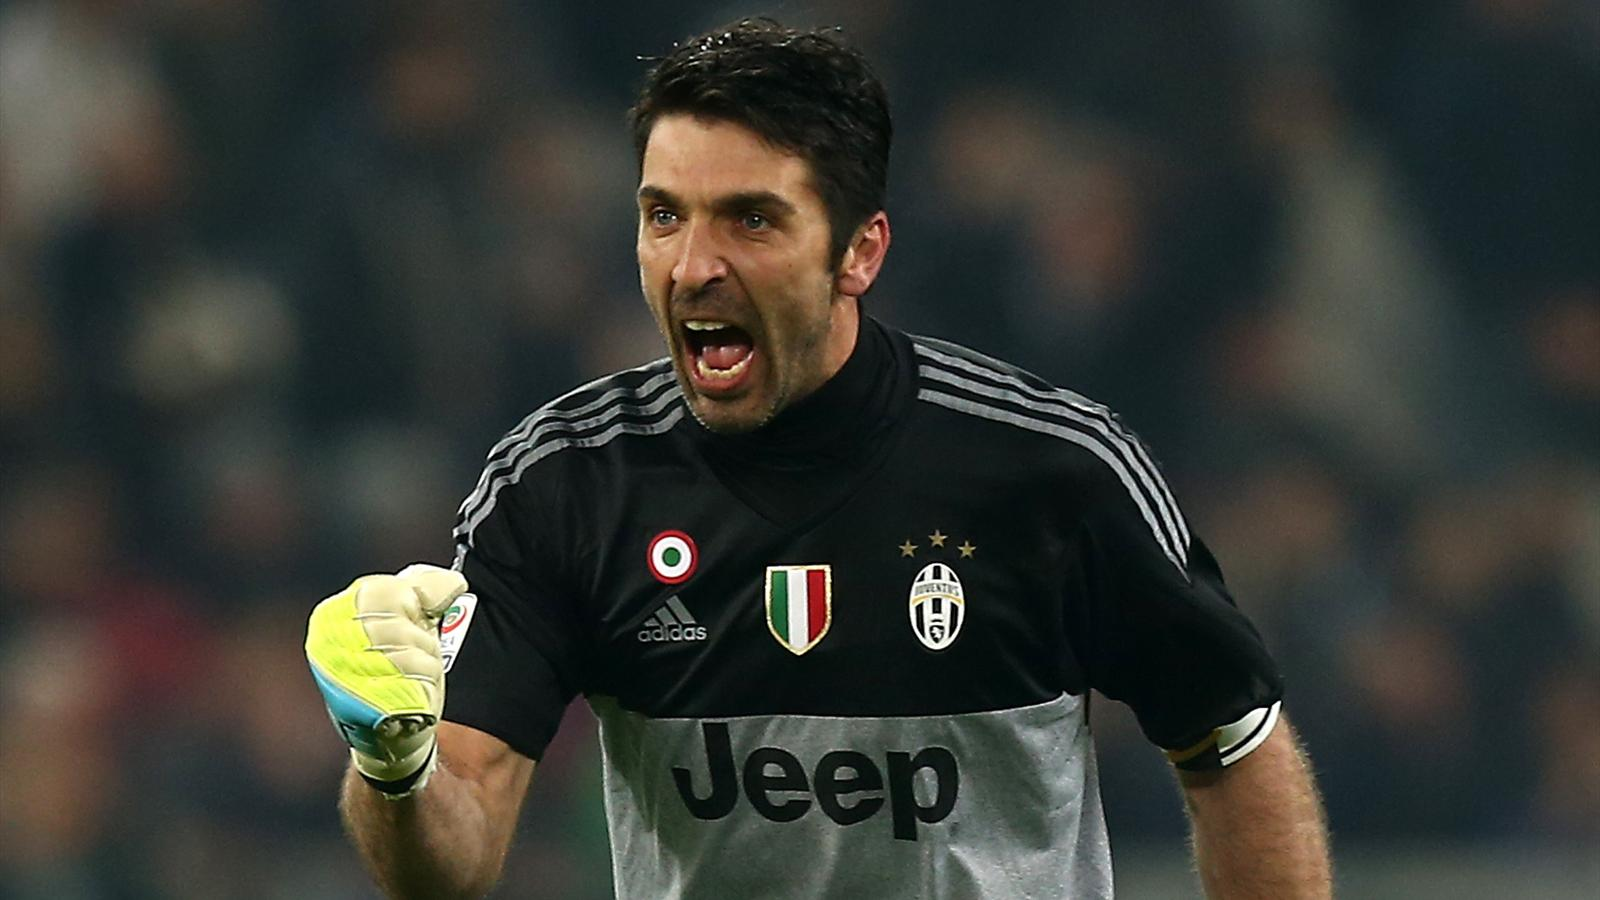 Gianluigi Buffon 'proud' of Juventus team despite Champions League exit - Champions League 2015 ...